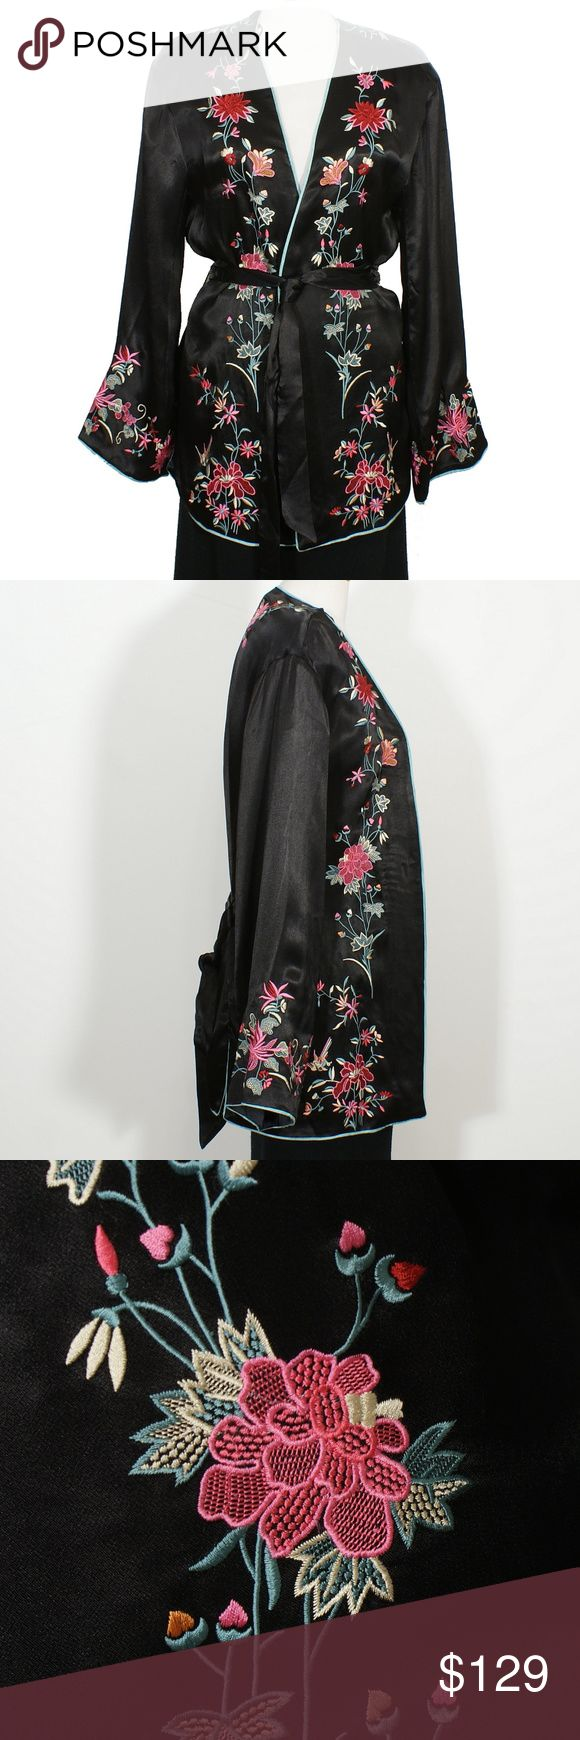 Embroidered Floral Satin Tied Blazer Kimono Jacket This jacket adheres to the bohemian nature. That's further perpetuated with its self-tie profile adorned with an array of embroidered blooms that borrows from the traditional Japanese kimono silhouette. Luxe stain blazer featuring beautiful and colorful floral embroidery  detailing.  It has open front, self tie, vented hem, aqua trim, and wide long sleeves.  Fully Lined.  Material:  100% Viscose, Lining: 100% Polyester Cleaning:  Dry Clean…